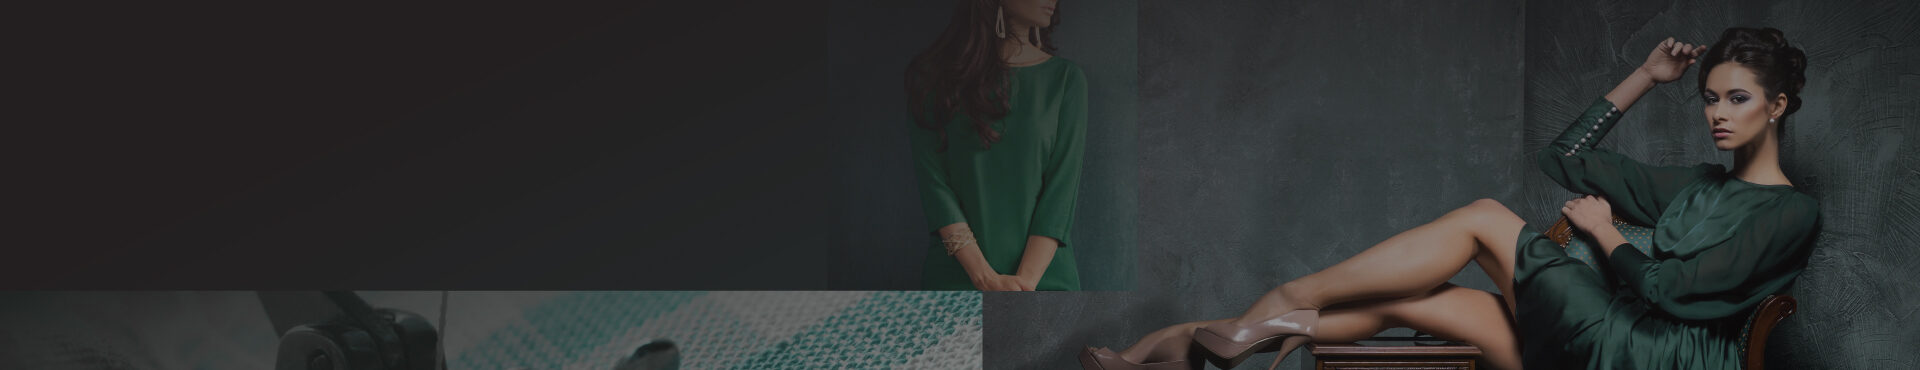 Email marketing for an online women's clothing store